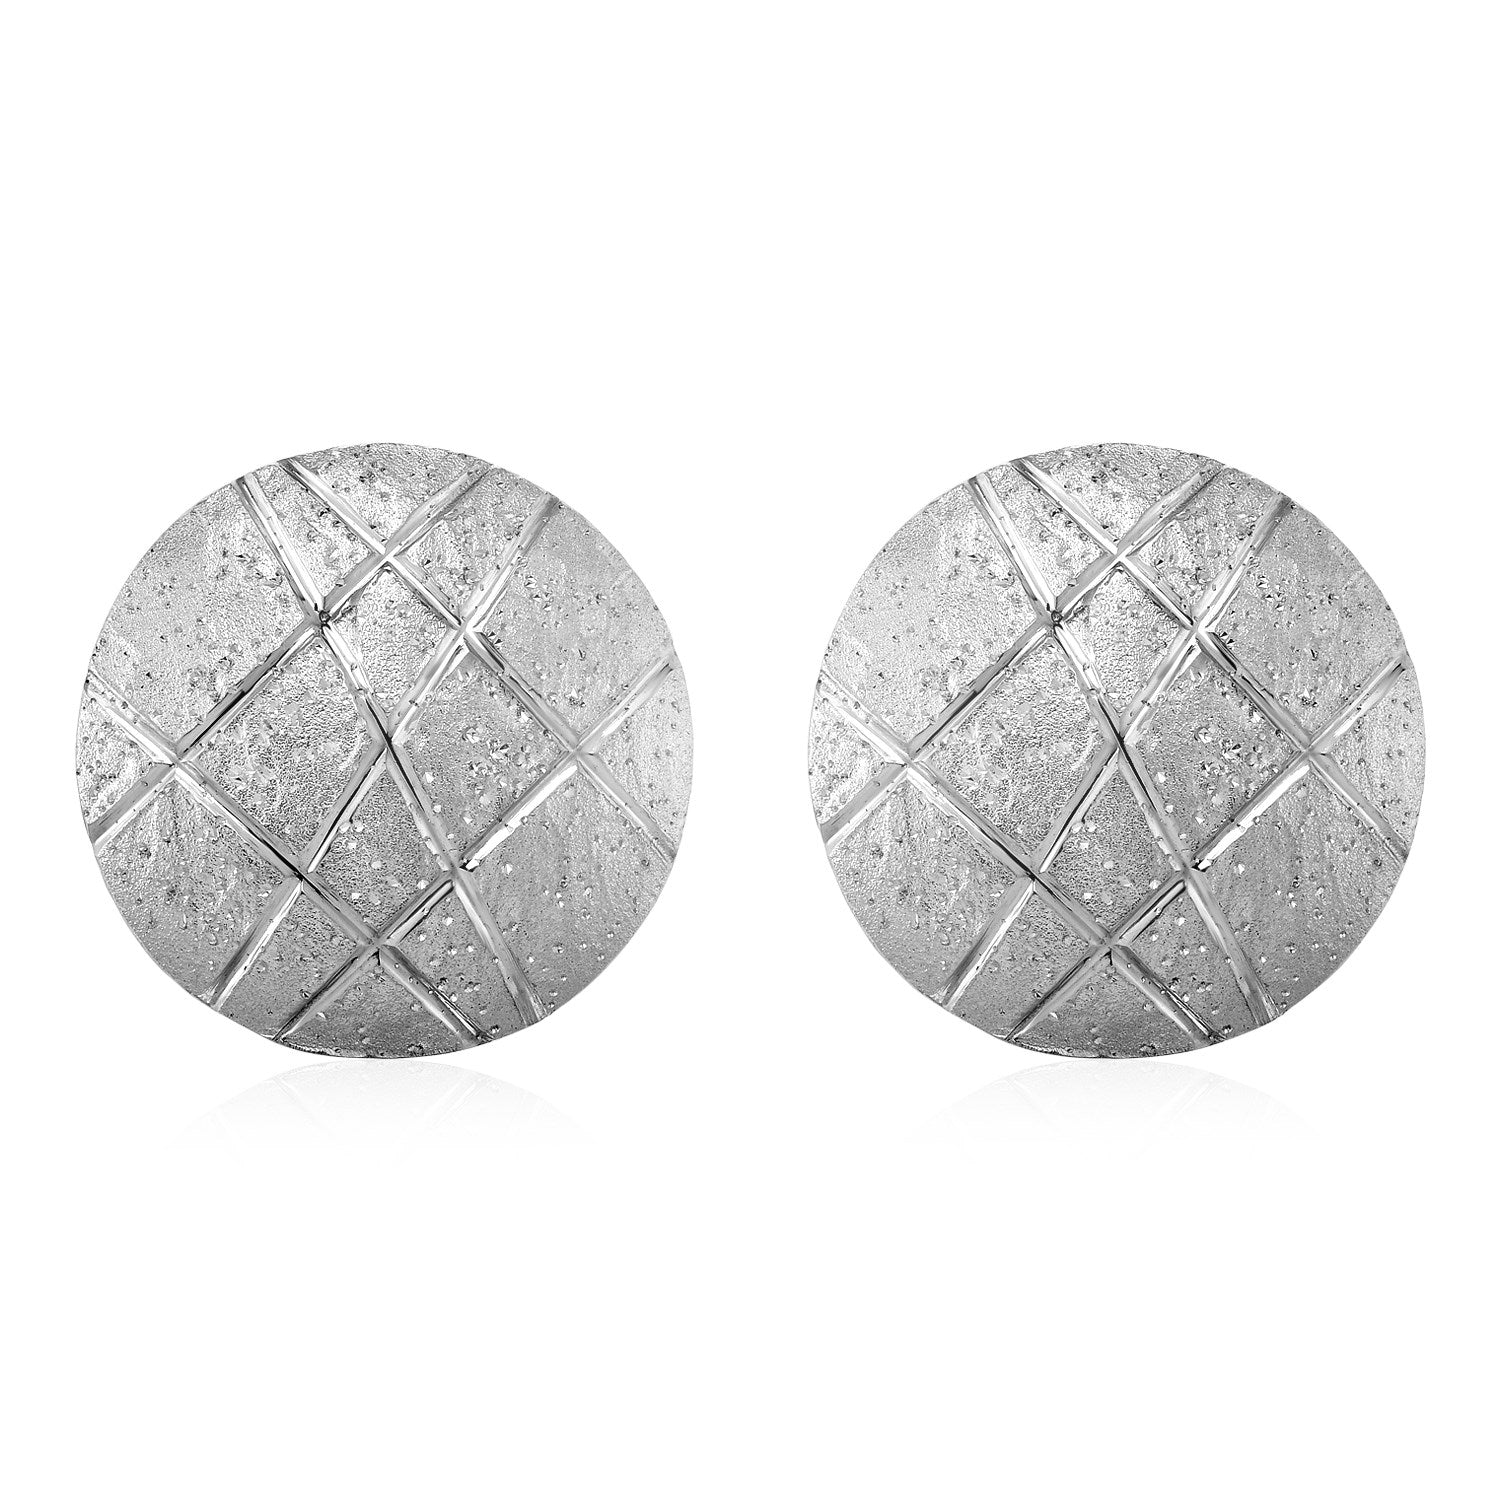 Original New York Style  Textured Round Disc Earrings in Sterling Silver